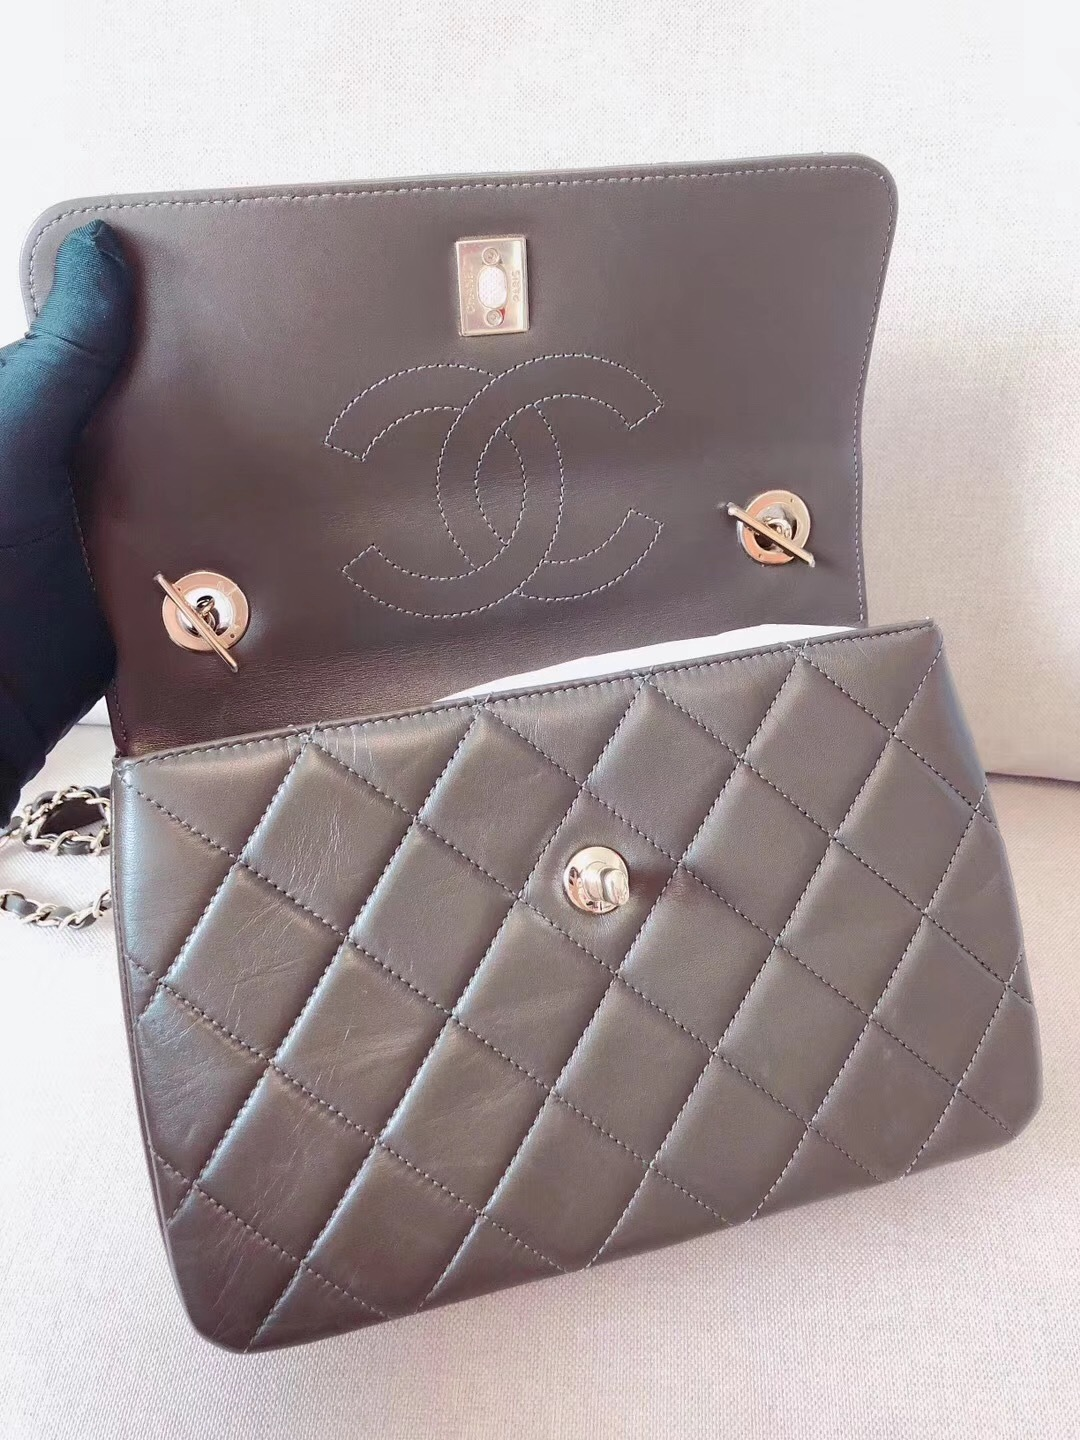 AUTHENTIC CHANEL QUILTED LAMBSKIN TRENDY CC 2 WAY HANDLE FLAP BAG GHW image 5